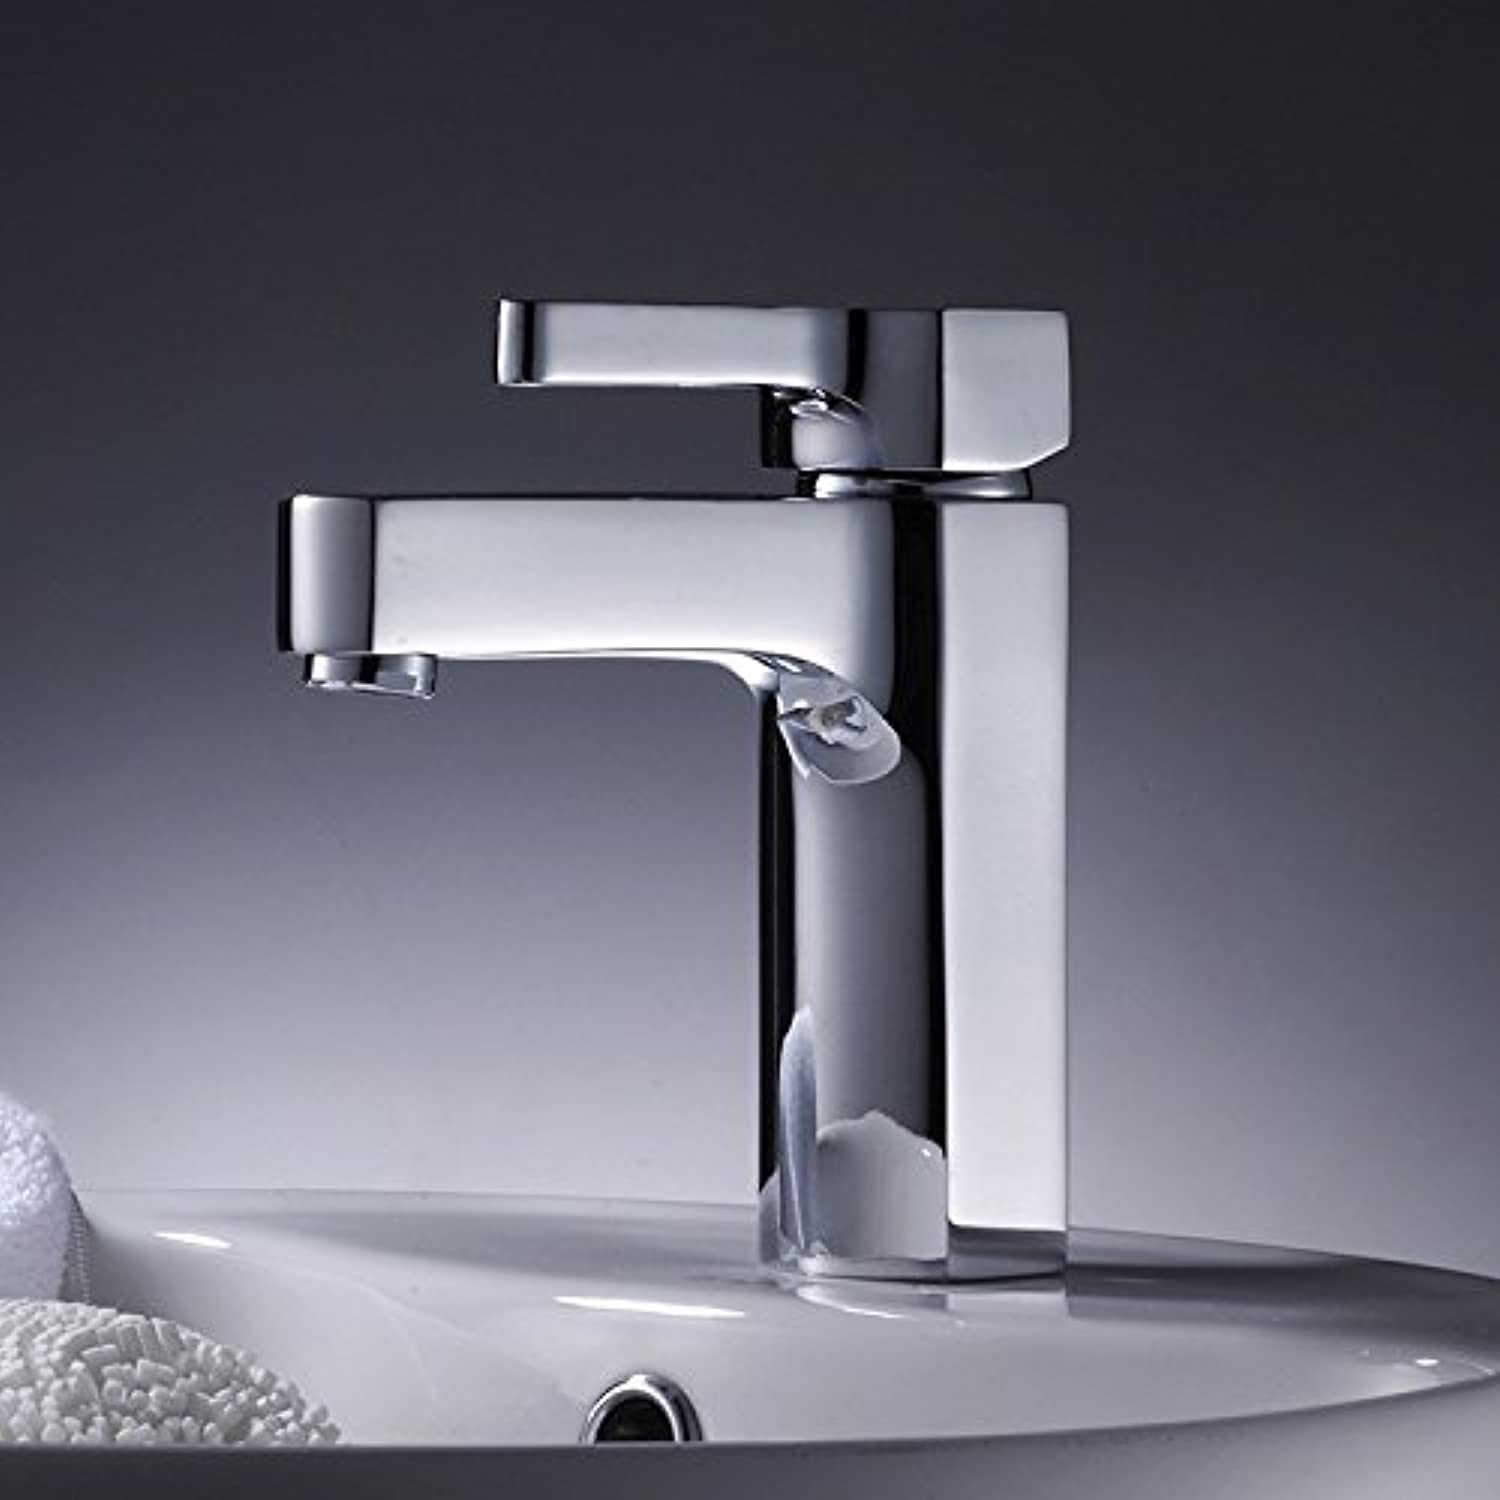 Aawang Basin Sink Mixer Tap Bathroom Faucet Hot And Cold Mixed Faucet Chrome Plated